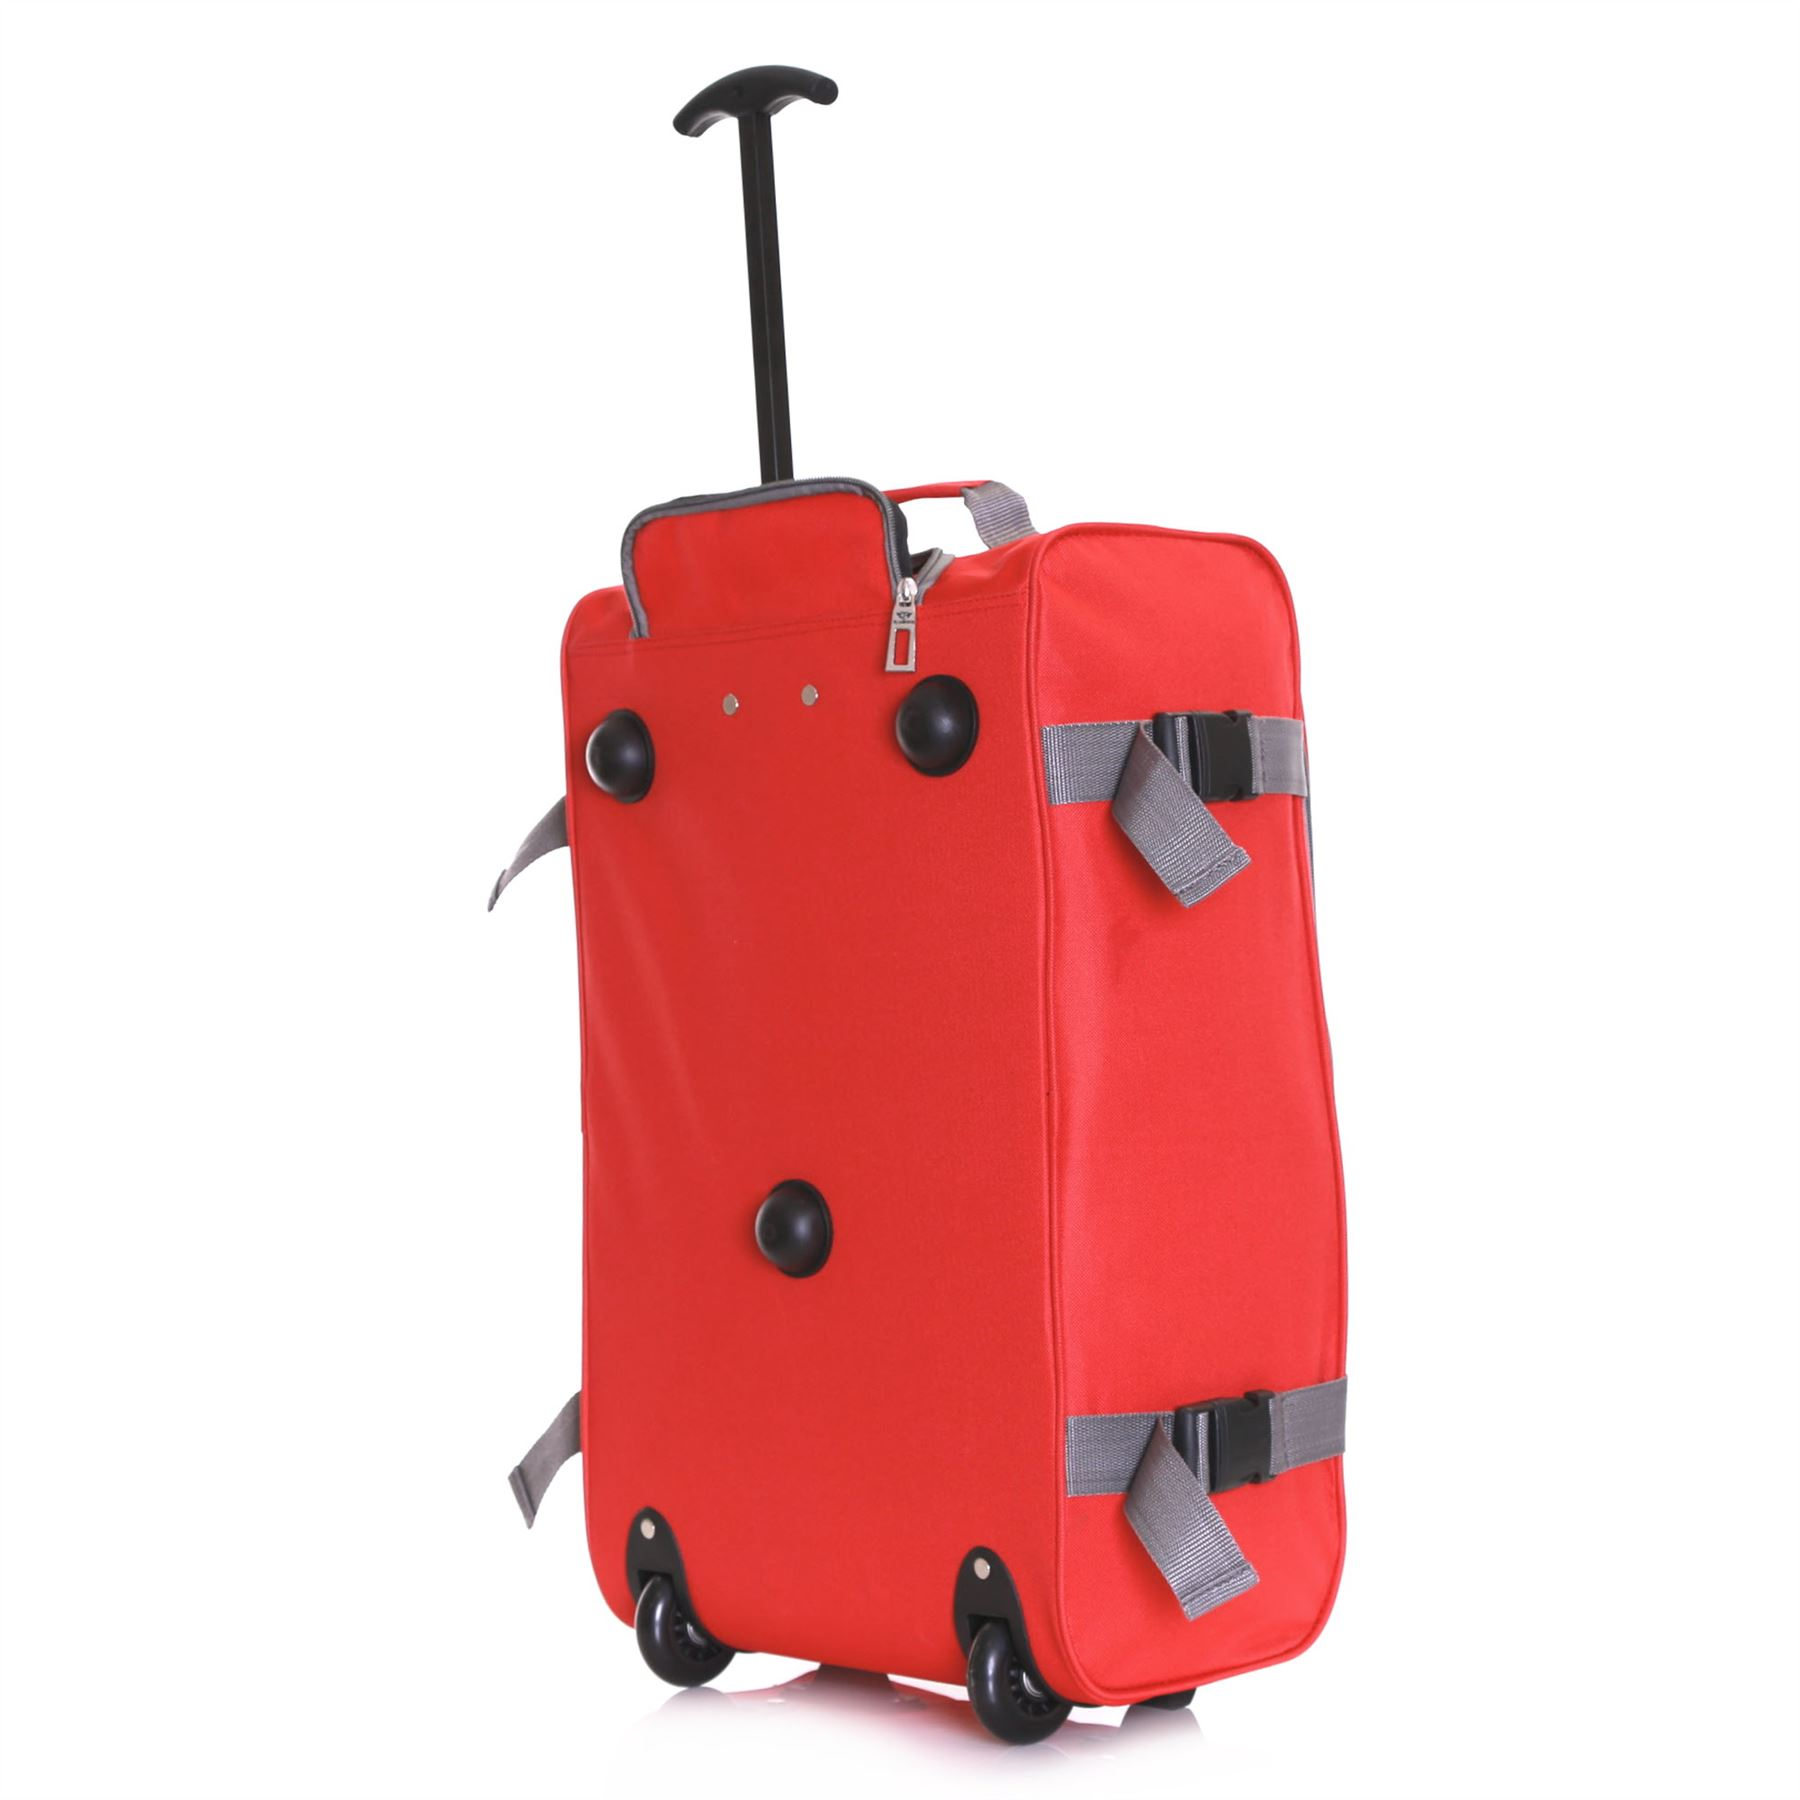 Ryanair-Easyjet-Set-of-2-Cabin-Approved-Hand-Trolley-Suitcases-Luggage-Case-Bags thumbnail 28